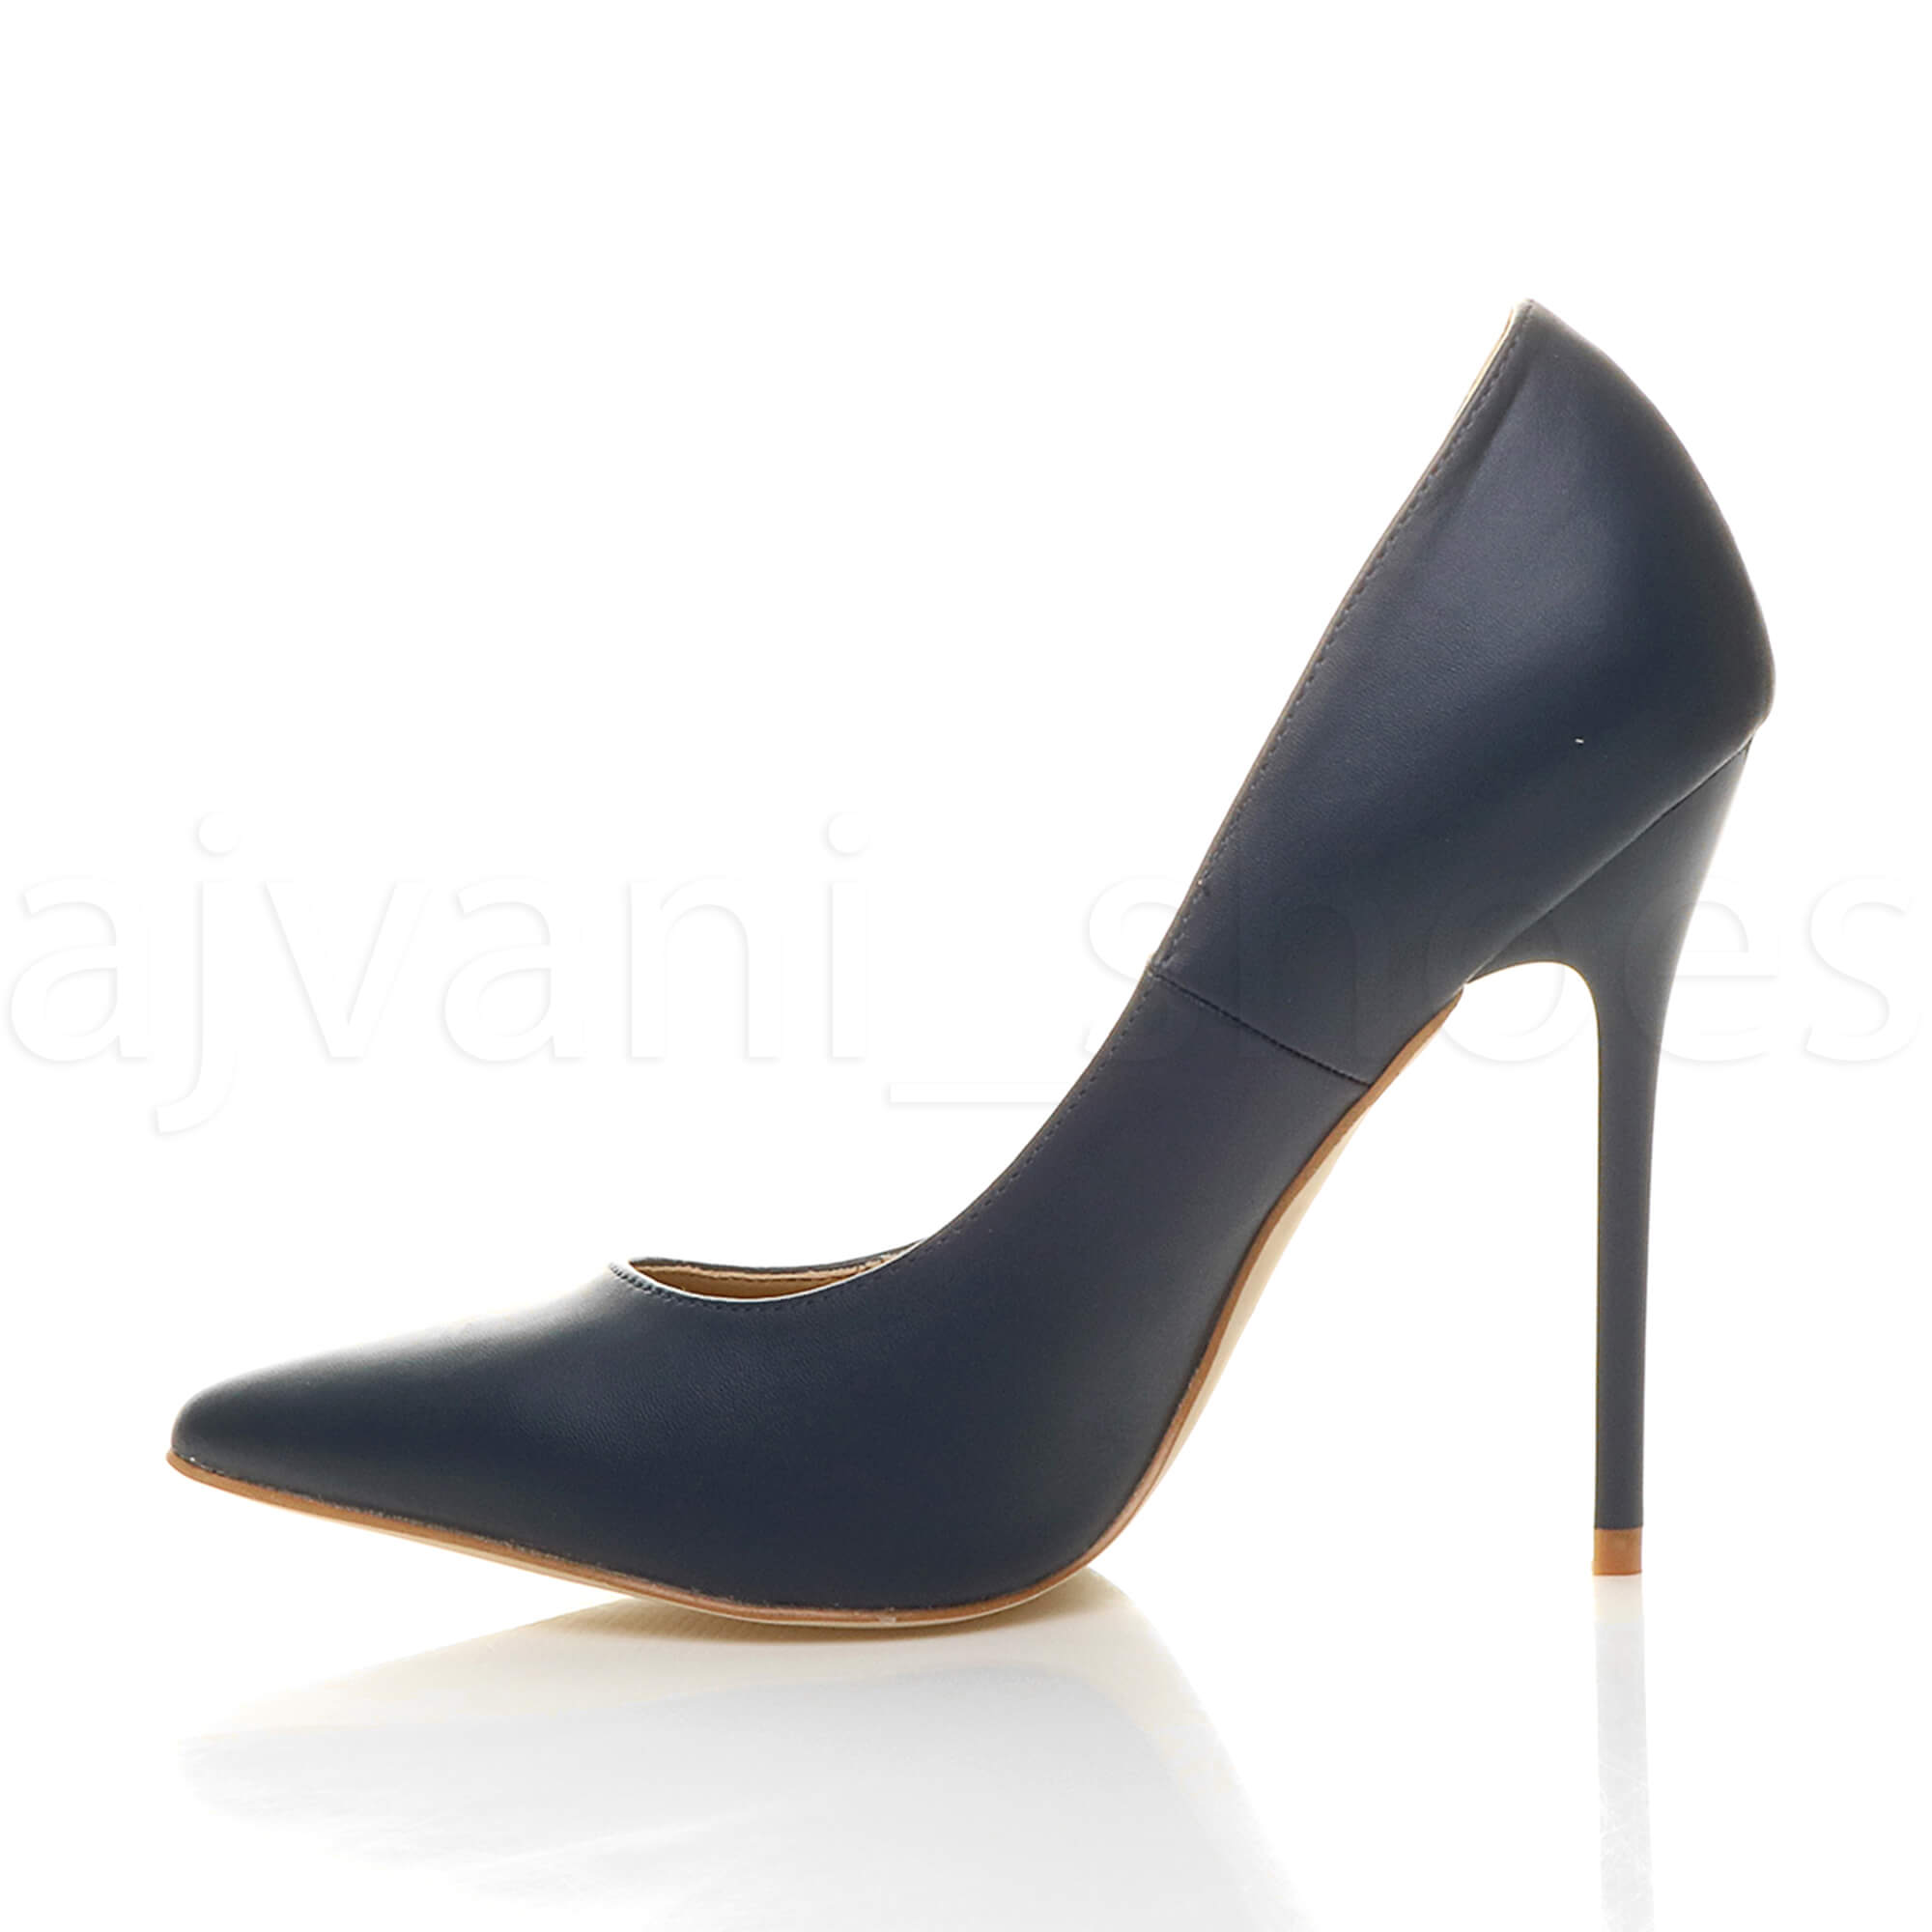 WOMENS-LADIES-HIGH-HEEL-POINTED-CONTRAST-COURT-SMART-PARTY-WORK-SHOES-PUMPS-SIZE thumbnail 90